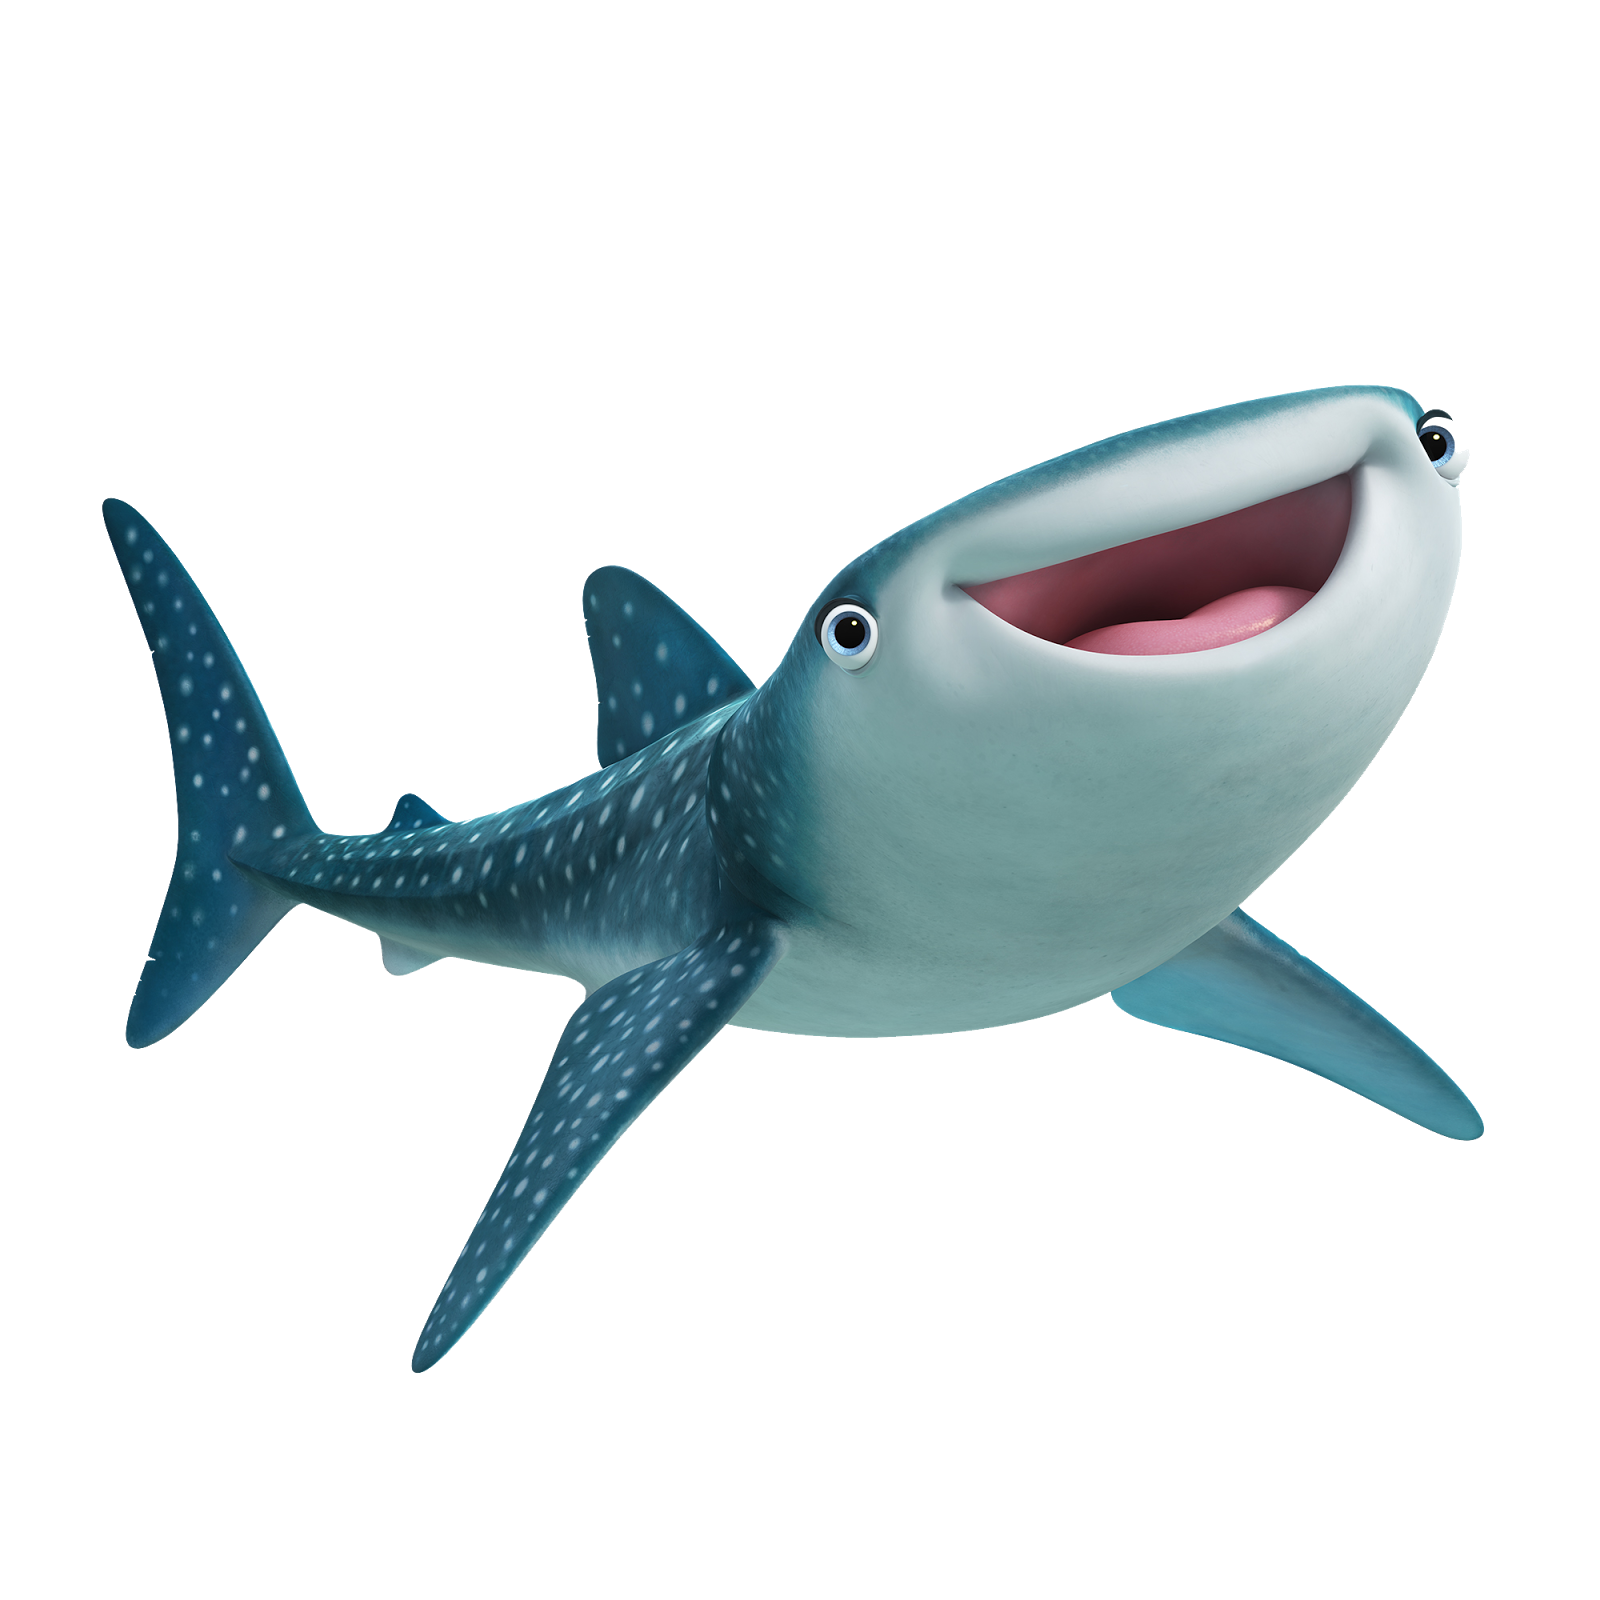 Bailey from dory fish clipart transparent download buscando a dory, dory, png, imagenes, descargar, free, printables ... transparent download